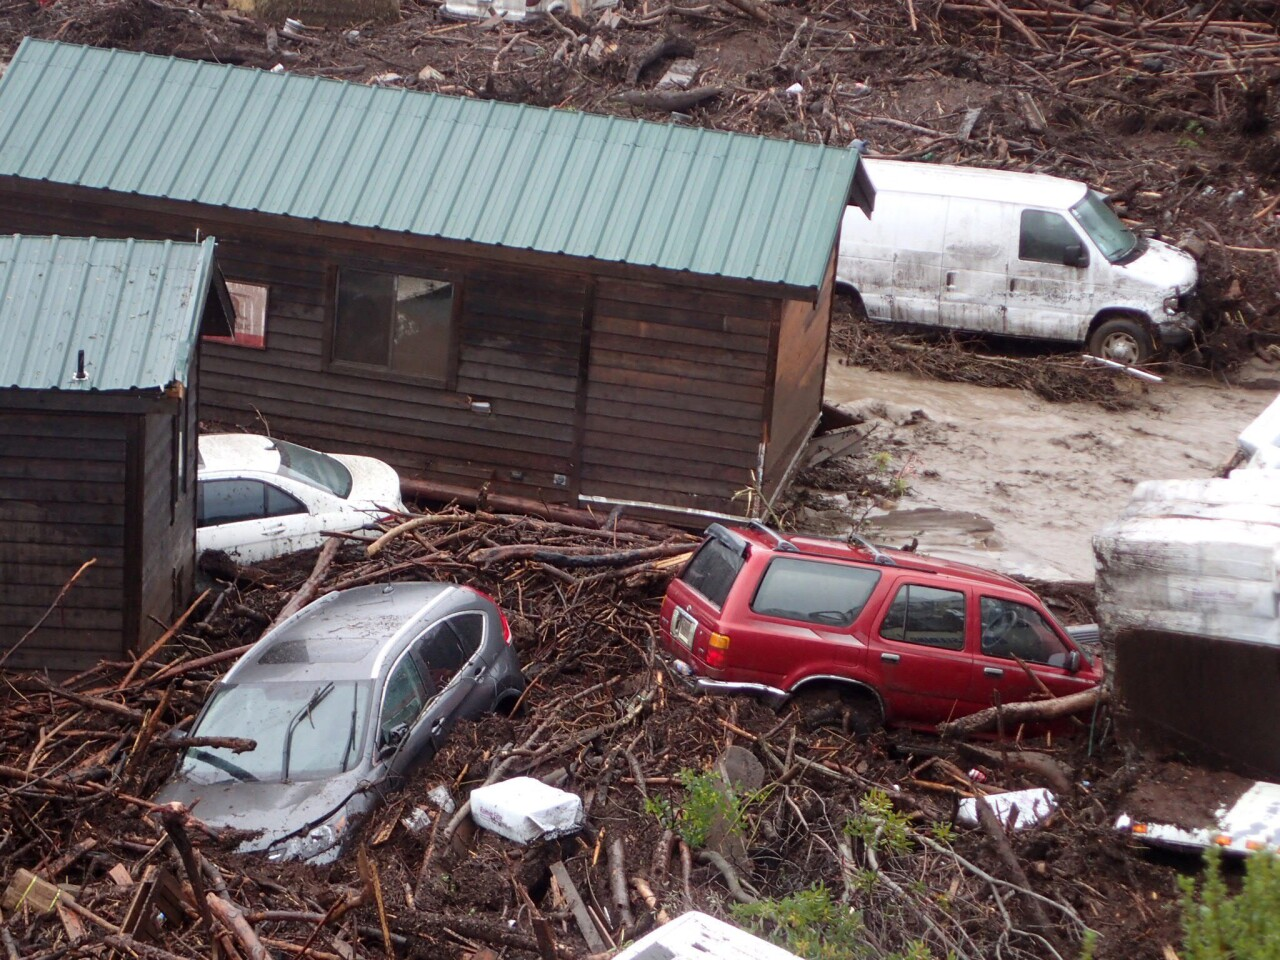 Cabins and vehicles are swept away by storm runoff at El Capitan Canyon Resort & Campground in Gaviota on Friday.